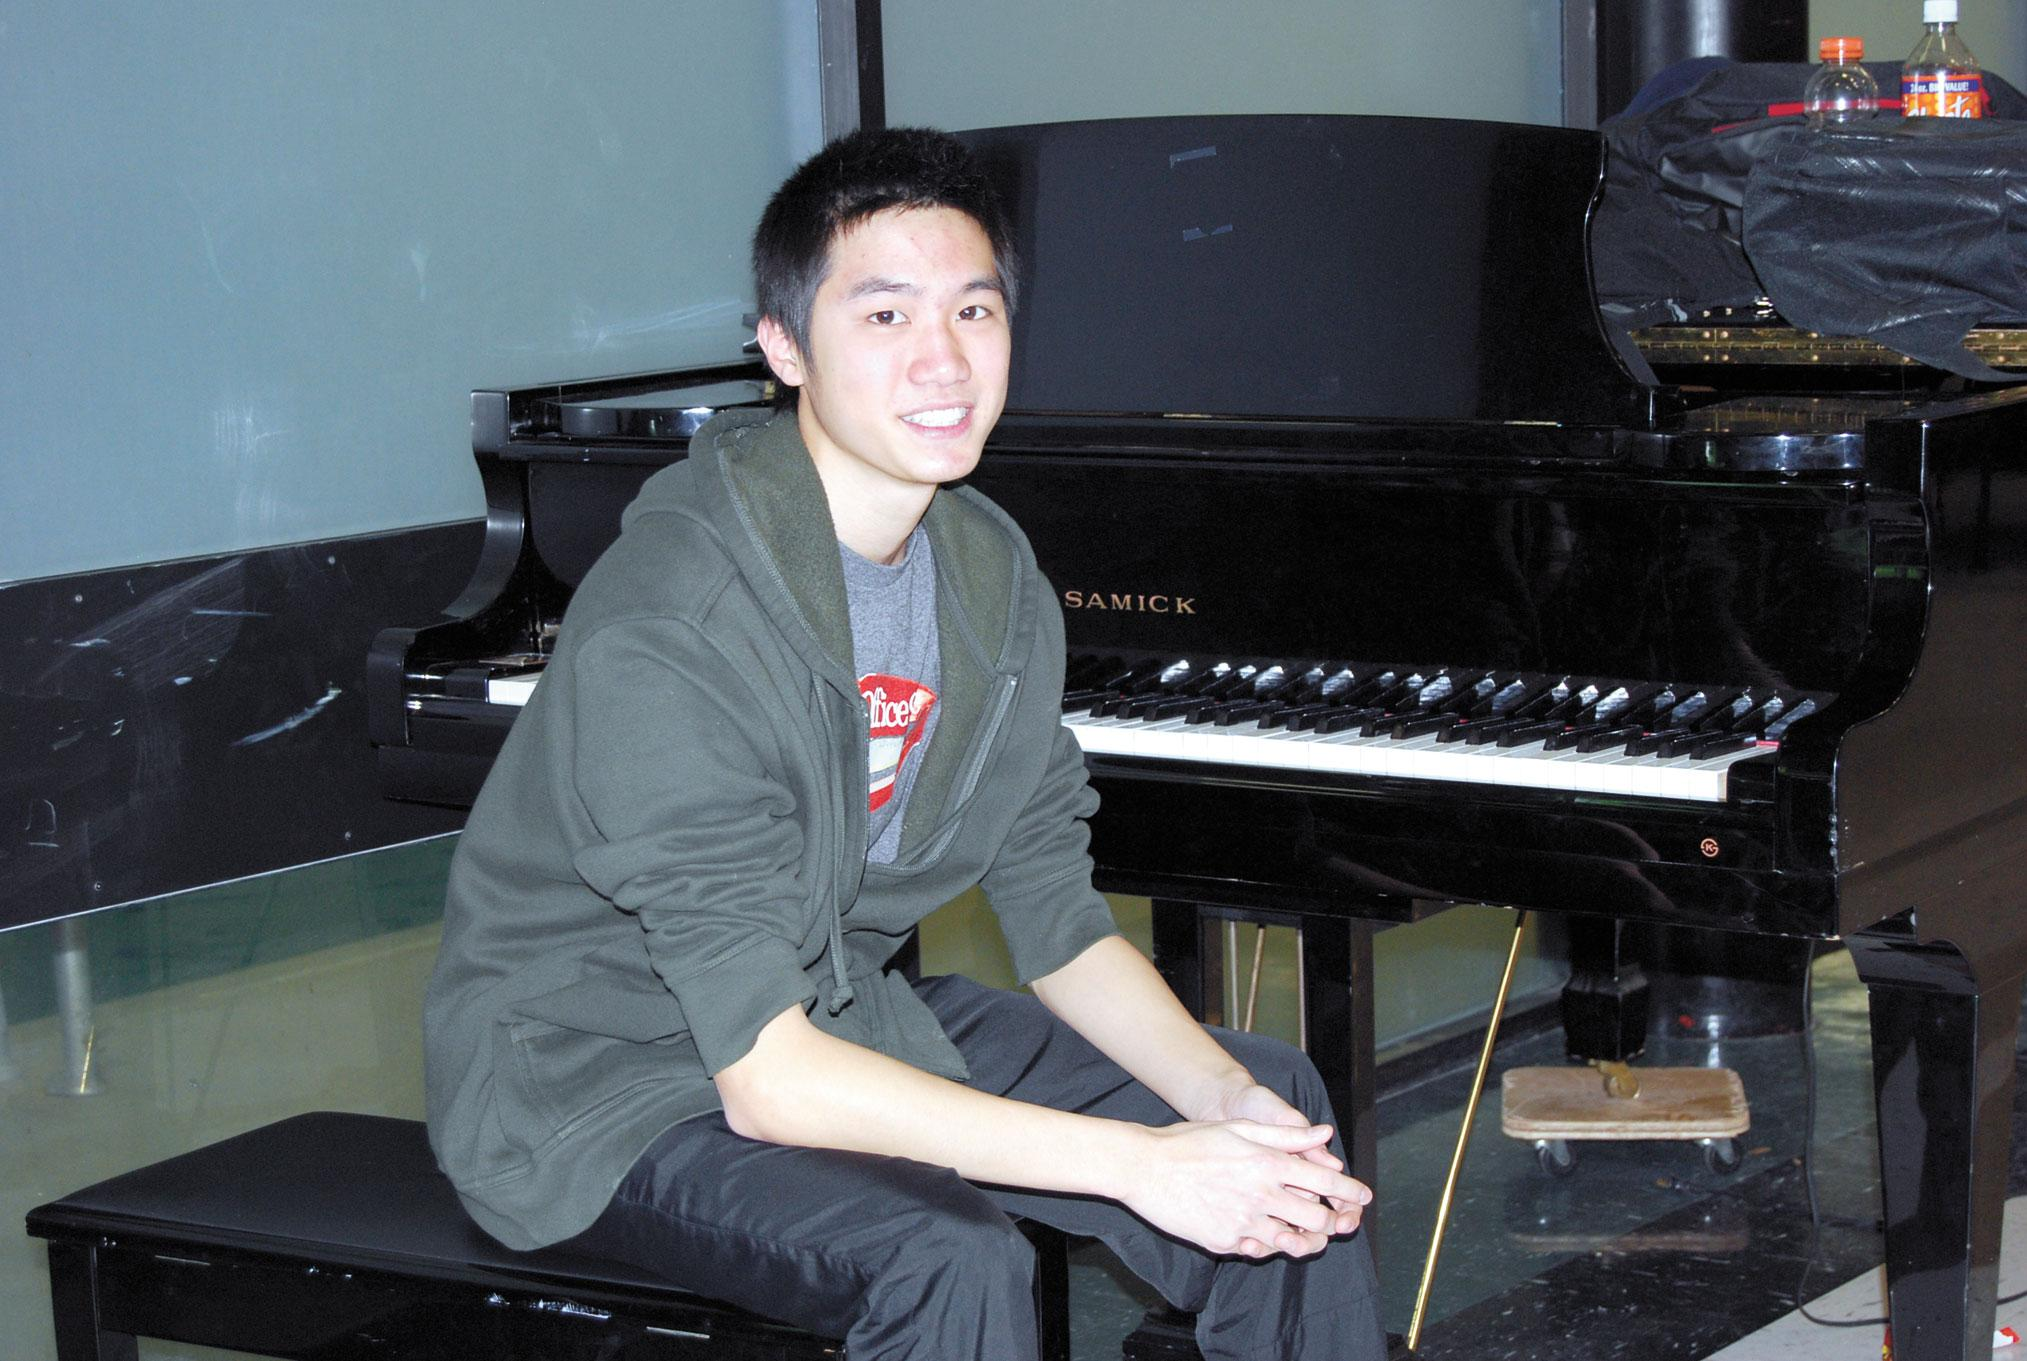 Student from Hong Kong studies at Seward